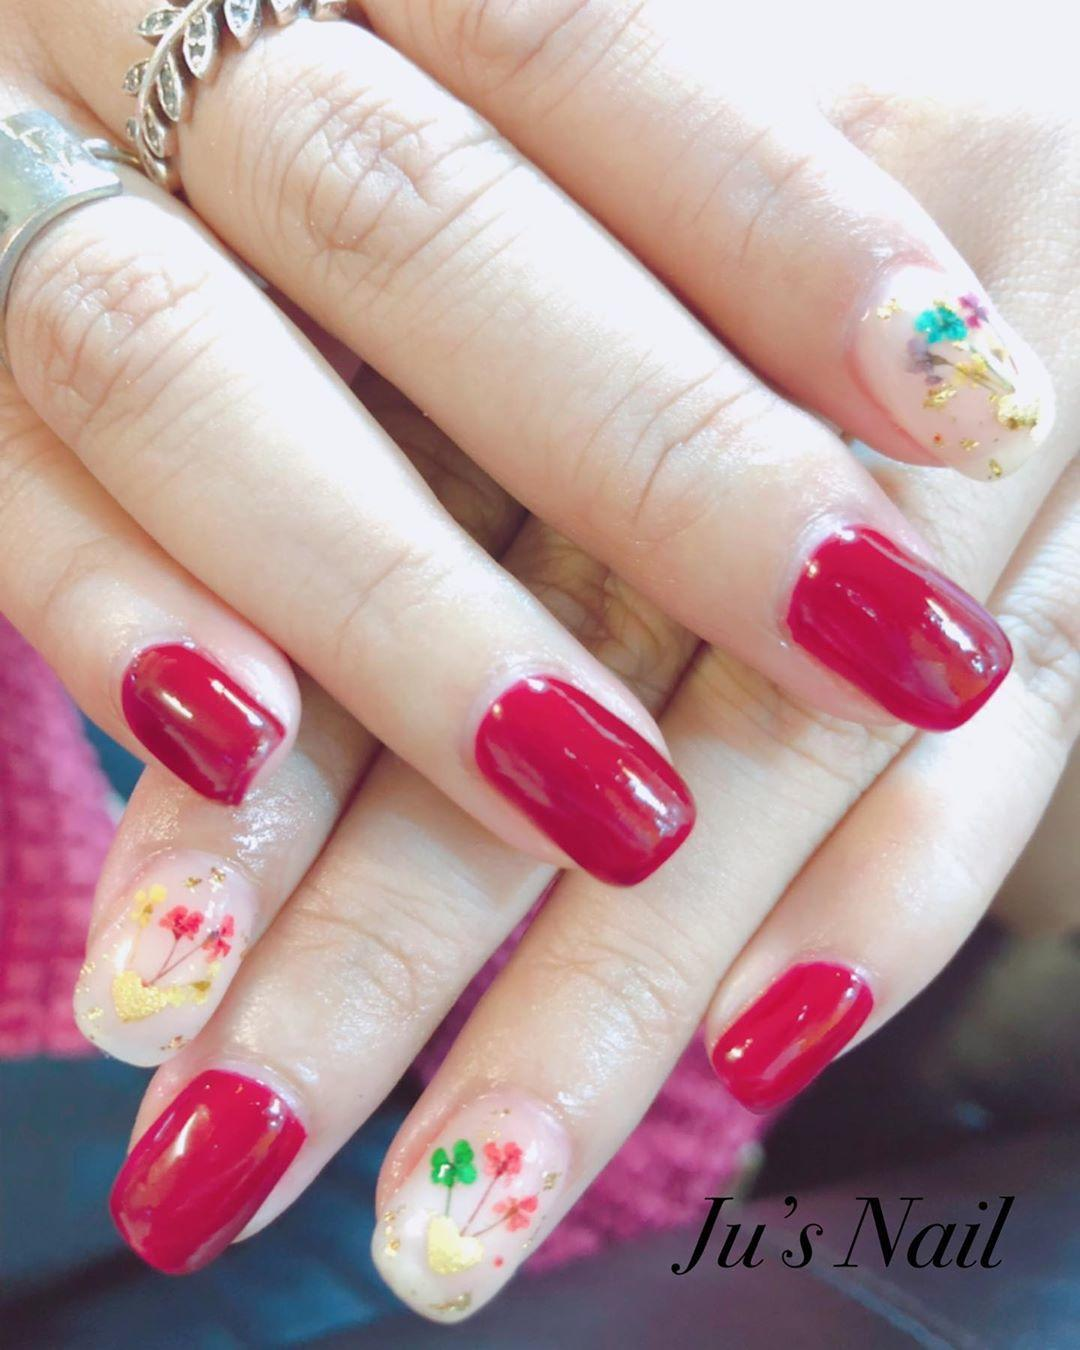 17 must see ideas for acrylic nail designs 2019 7 - 17 Must See Ideas forAcrylic Nail Designs 2019